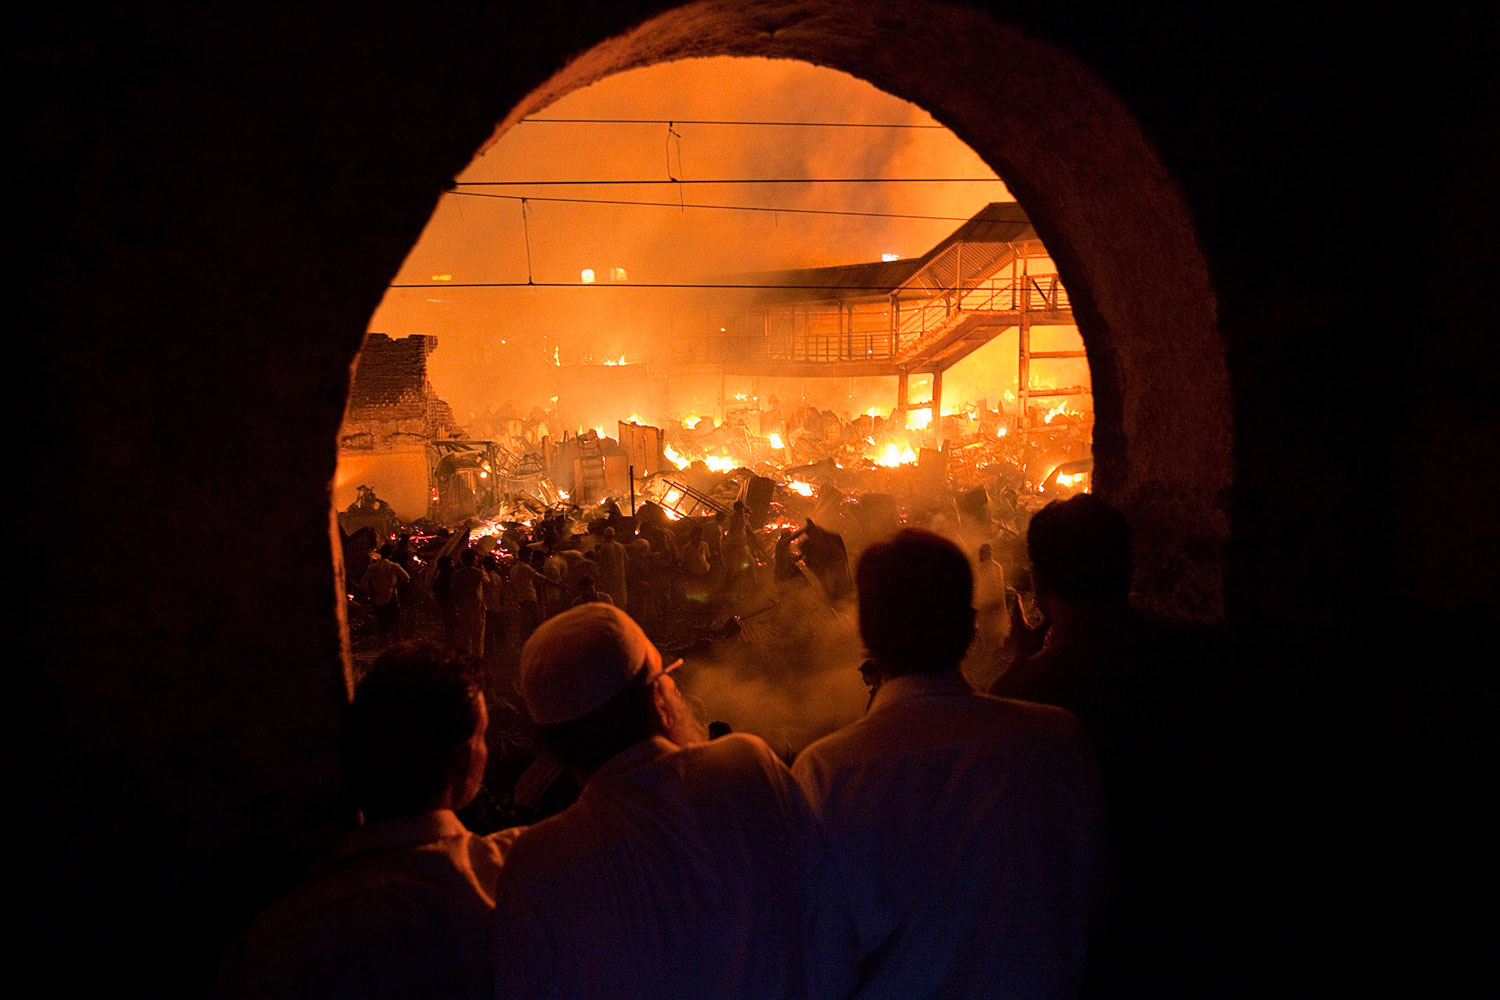 March 4, 2011. People watch from a nearby building as a fire burns in a slum in Mumbai. A fire gutted a large shanty town, home to hundreds of residents, next to Bandra station in Mumbai's suburbs.